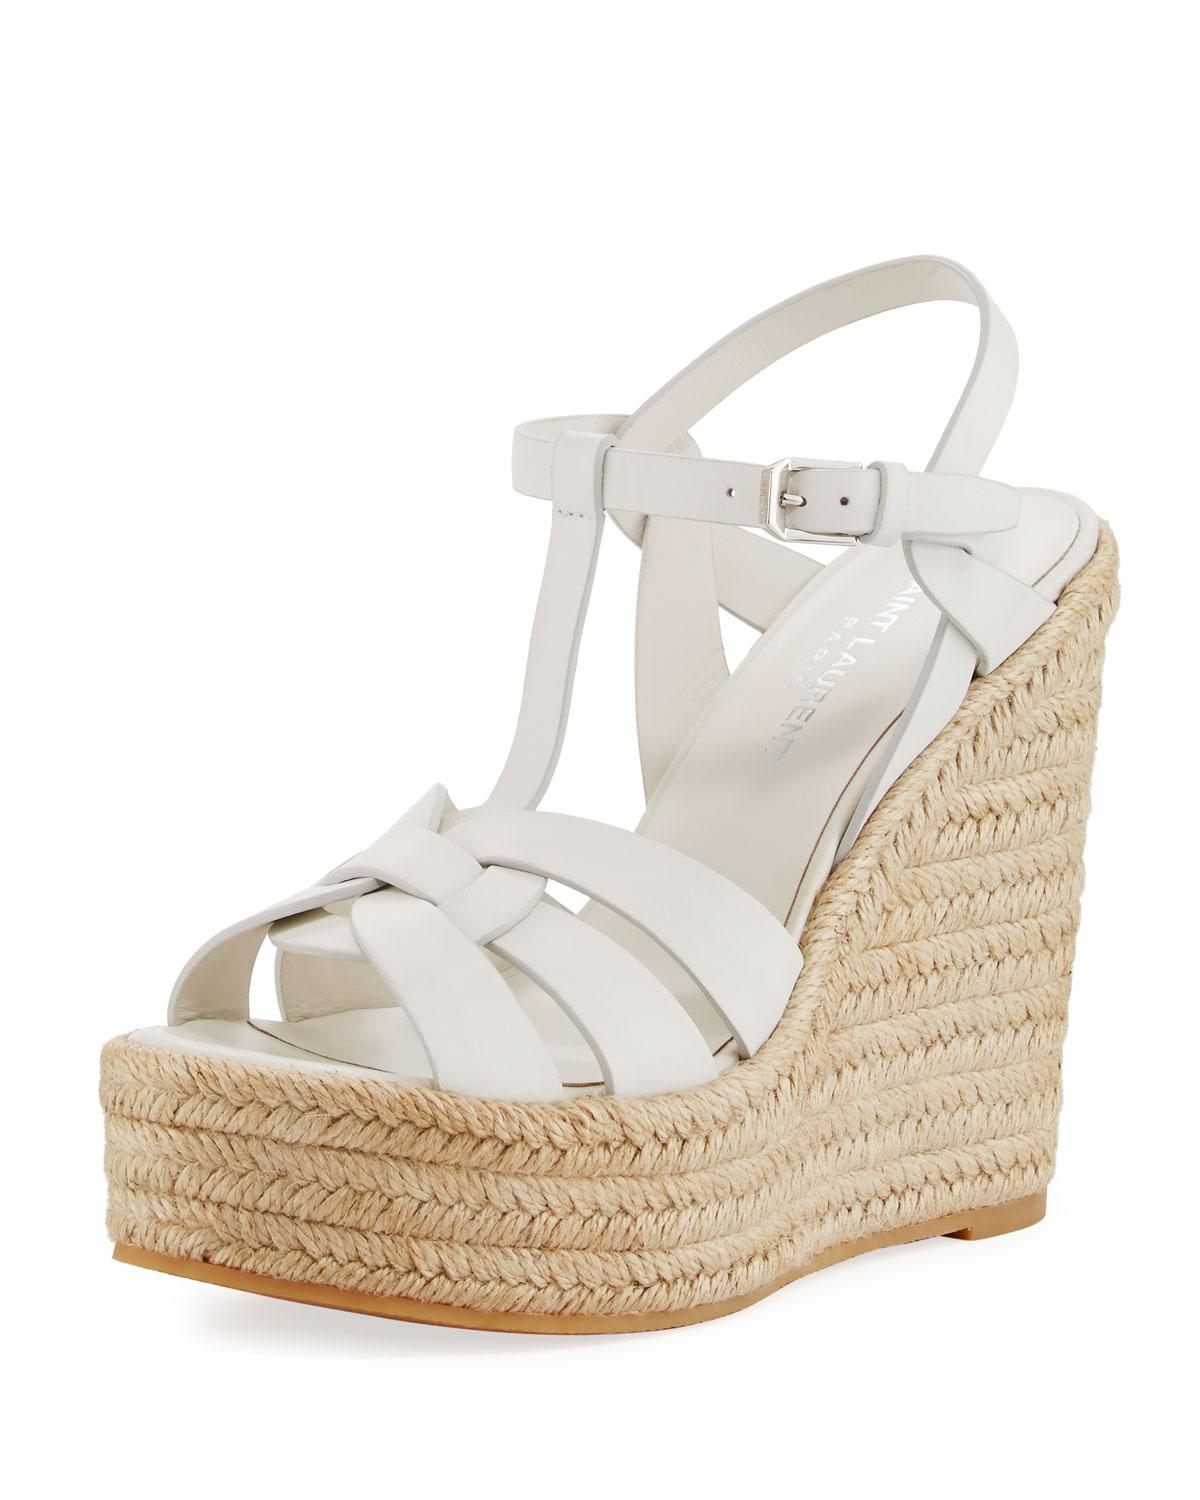 e22b25b2a84 Lyst - Saint Laurent Espadrille T-strap Wedge Sandals in White ...